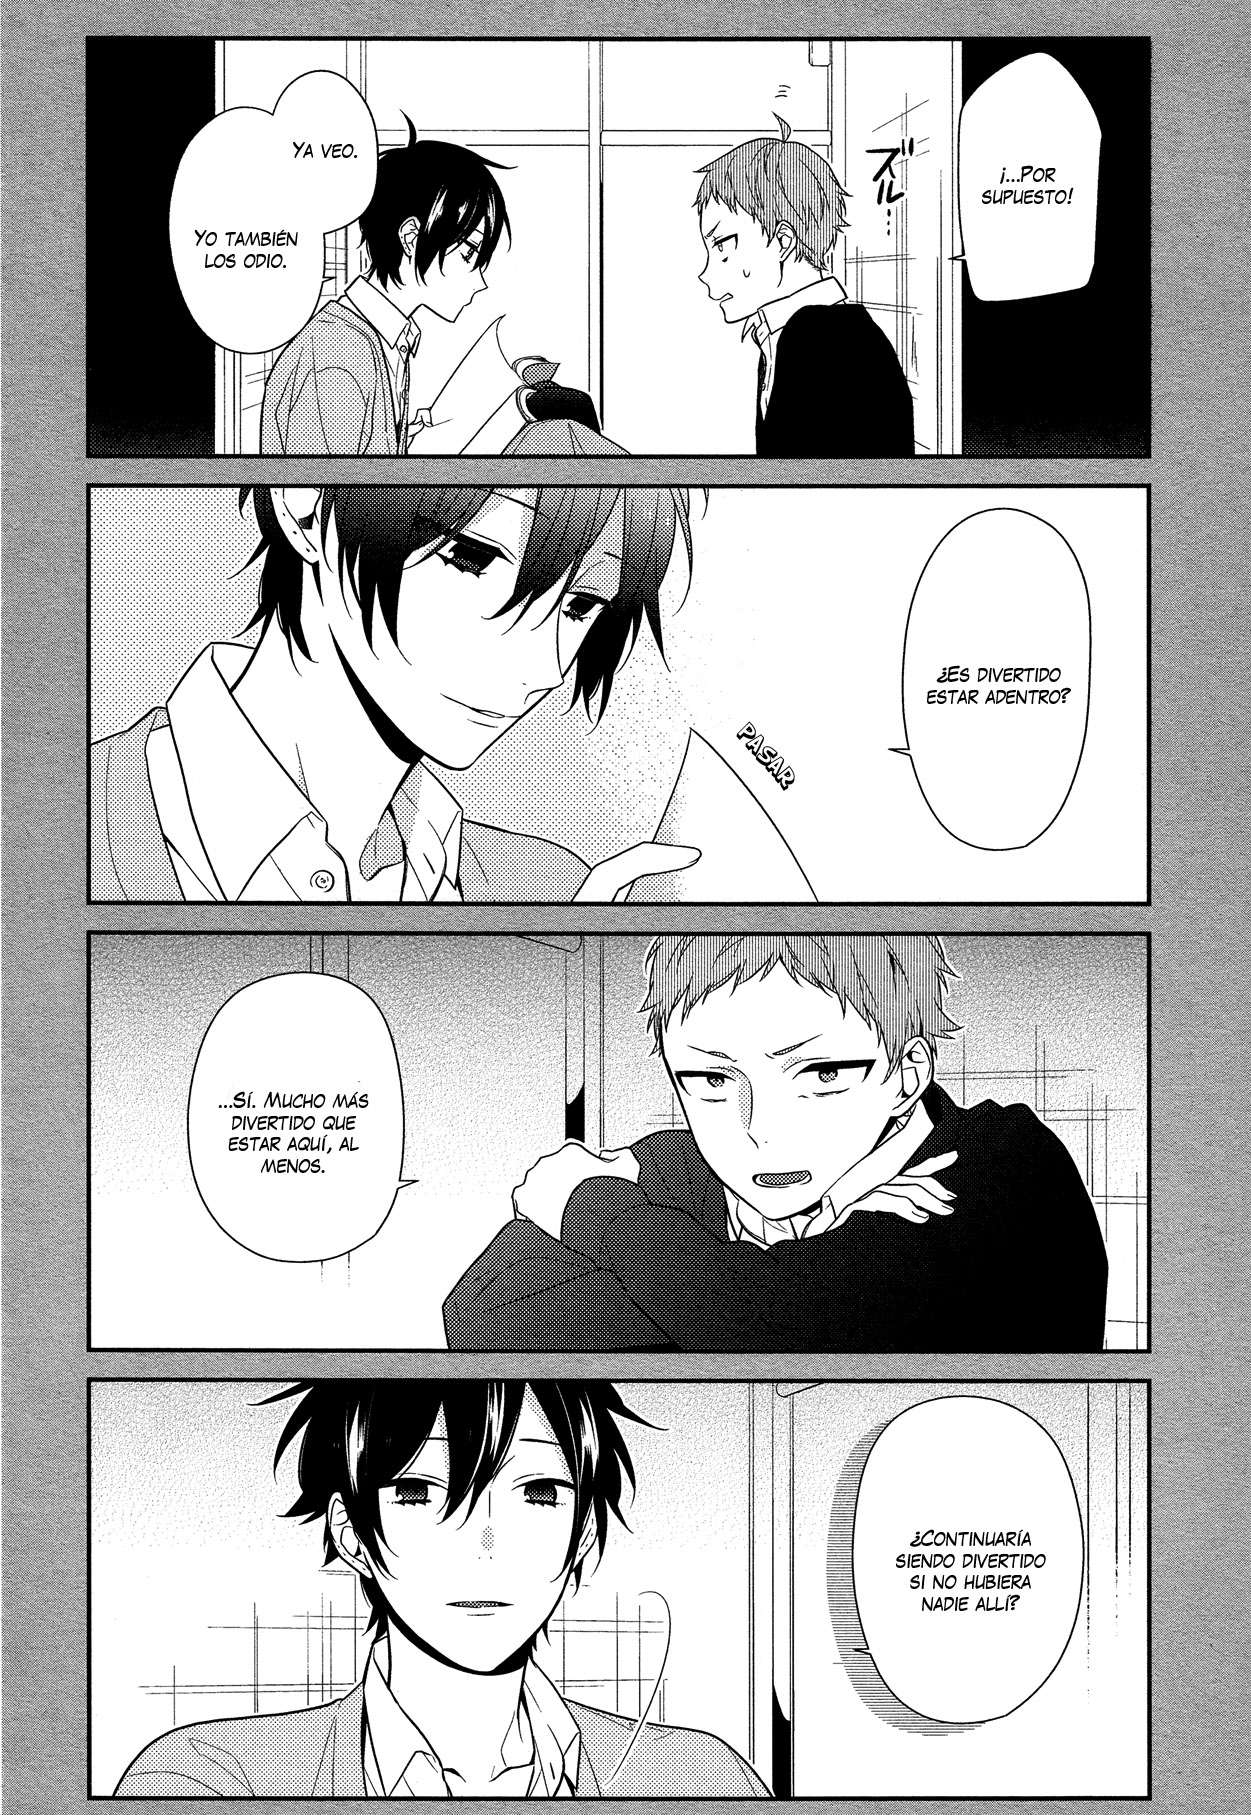 http://c5.ninemanga.com/es_manga/19/1043/417194/cba2dc20f1a6f353b96d6a03846d0ad6.jpg Page 9